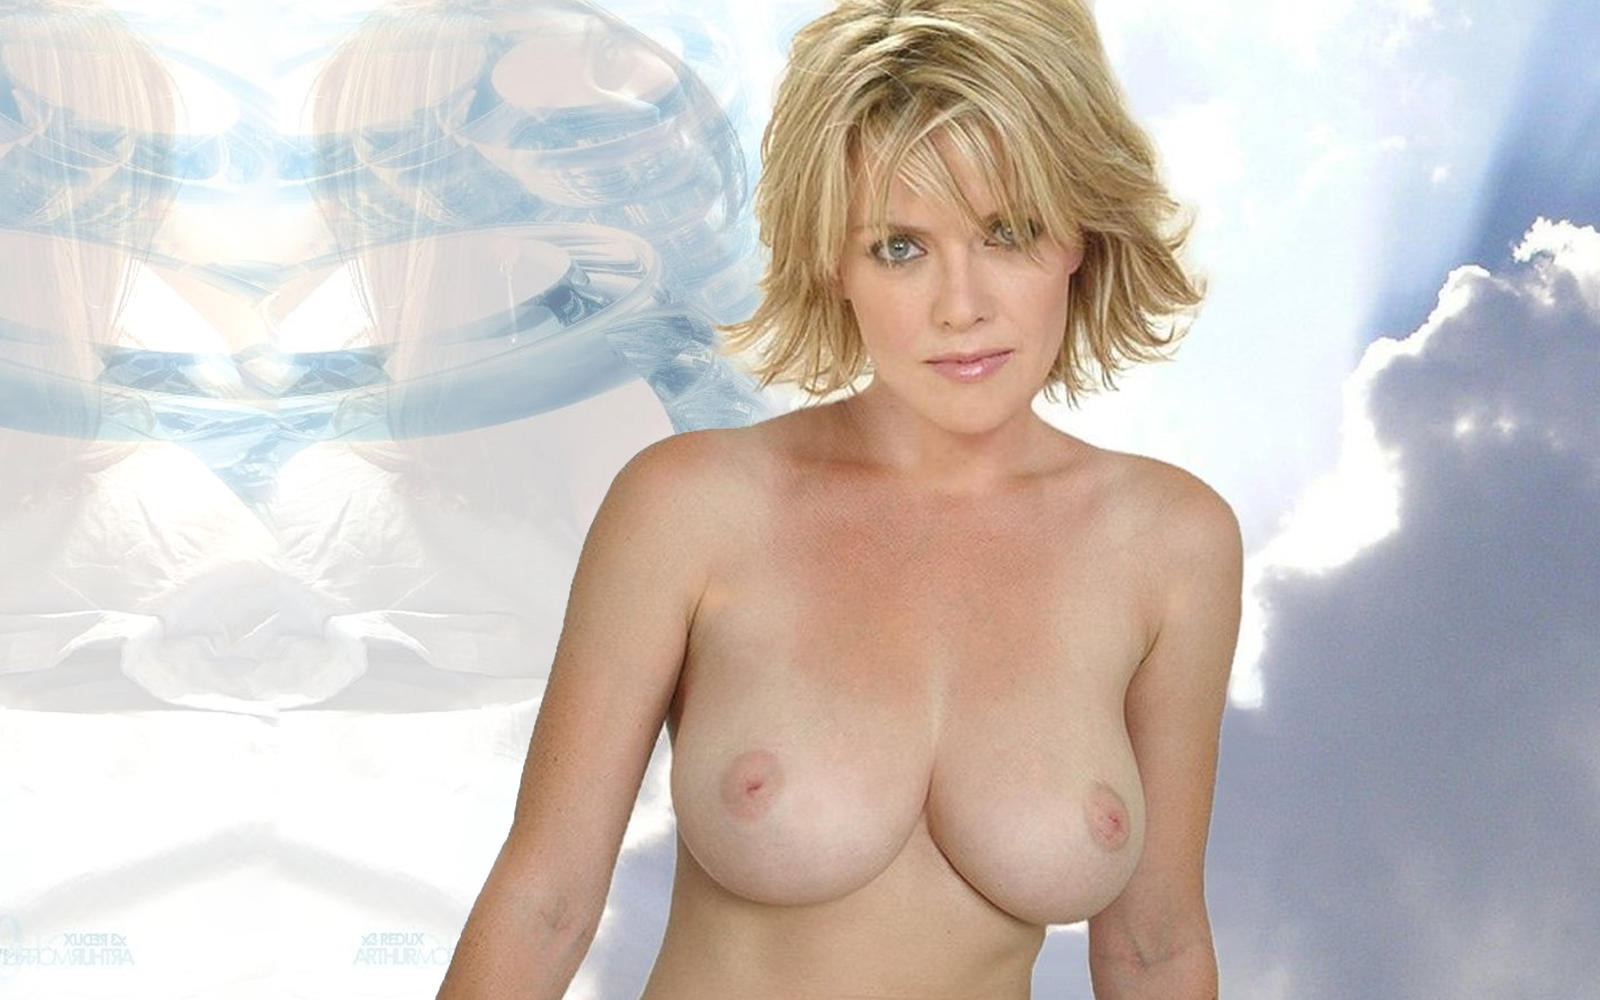 Amanda tapping nude picture free